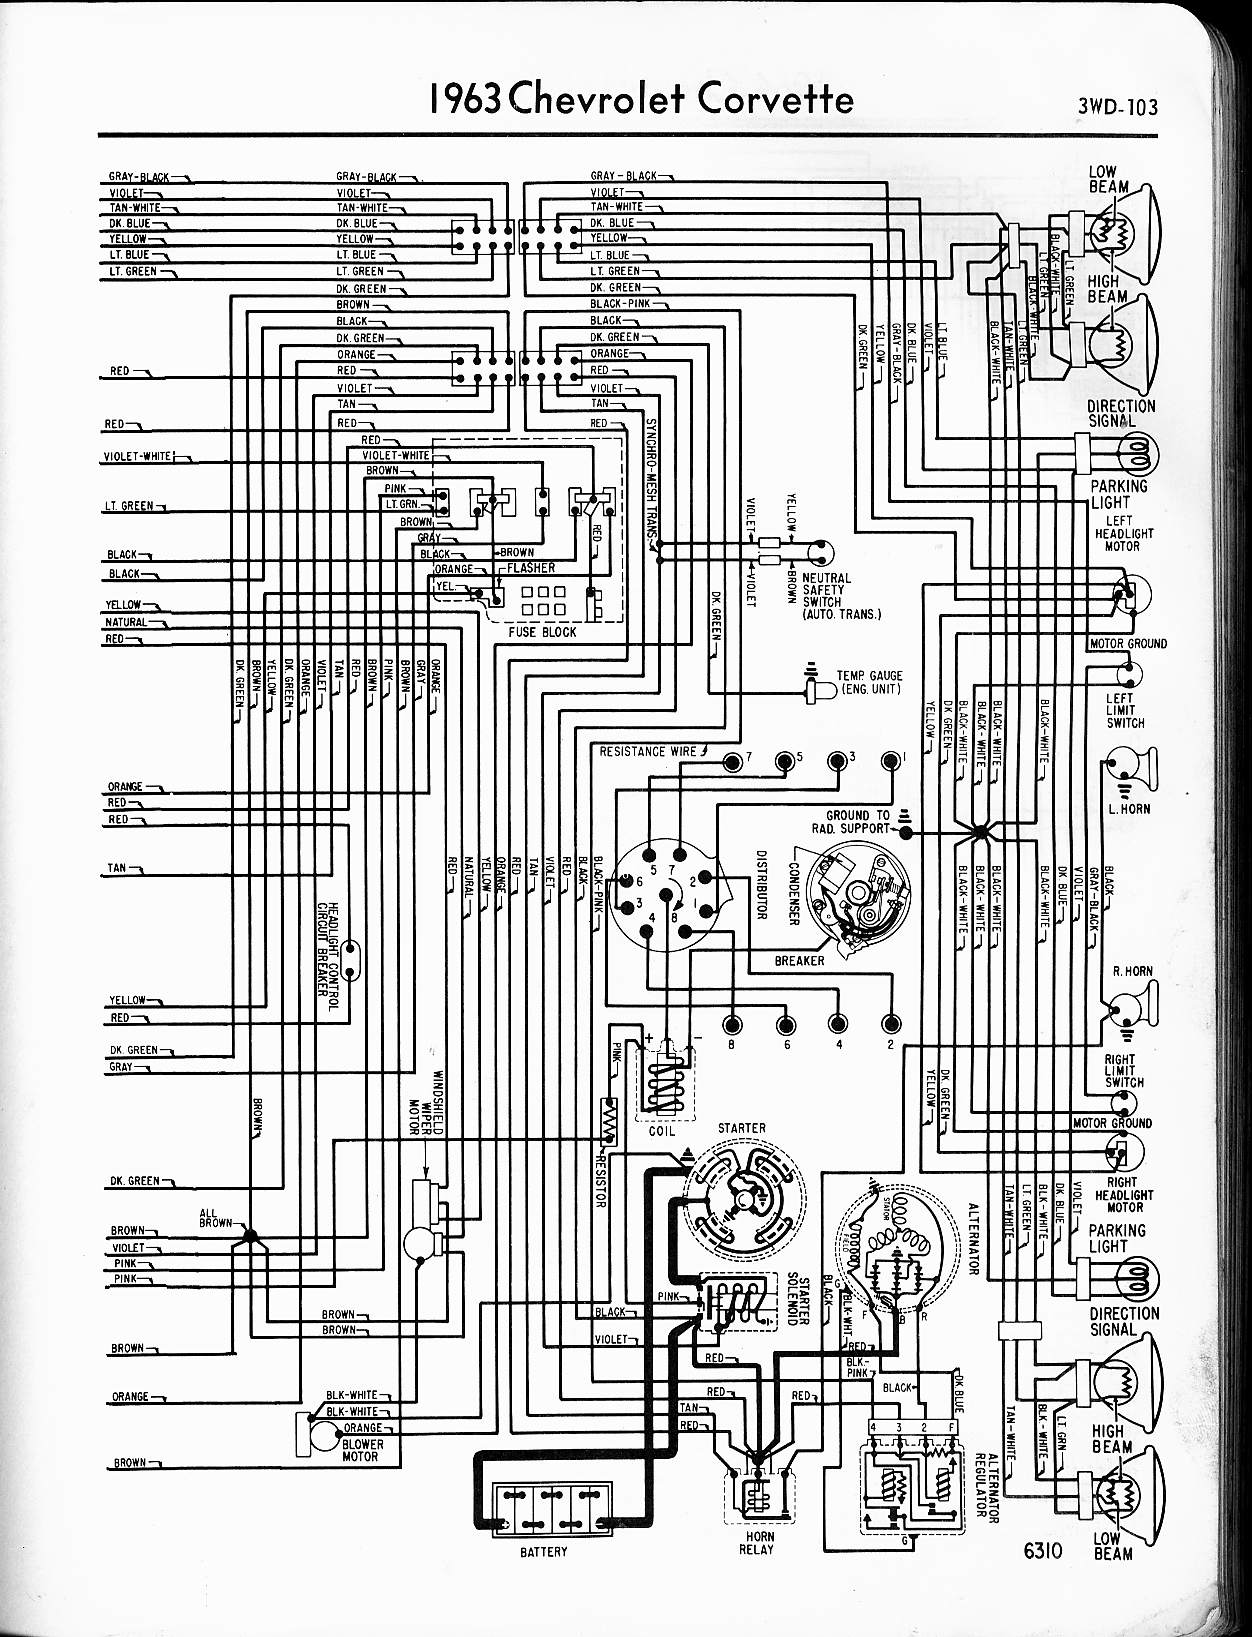 [SCHEMATICS_49CH]  78CE 1985 Corvette Engine Wiring Diagram | Wiring Library | 1985 C20 Engine Wiring Diagram |  | Wiring Library